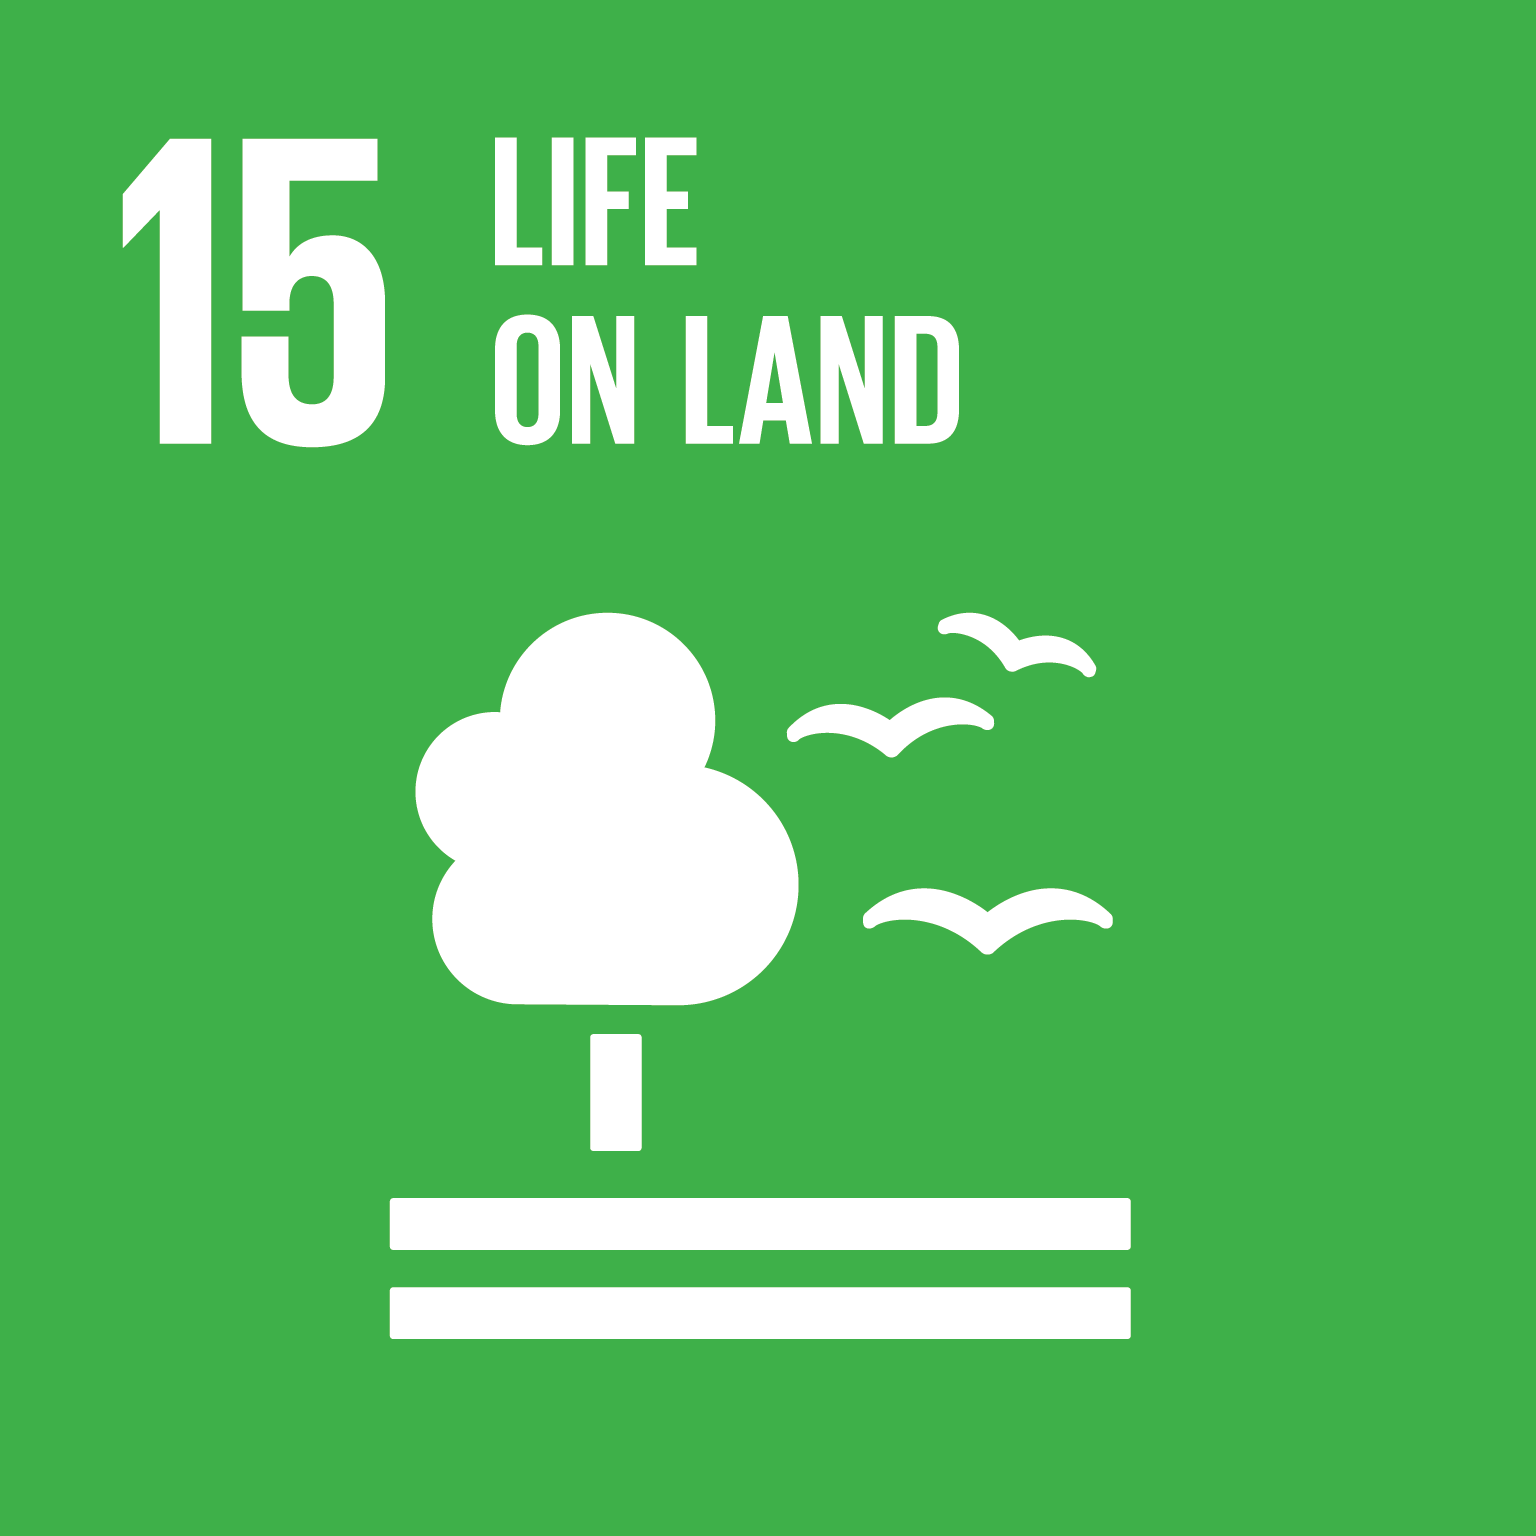 Sustainable Development Goal 15 icon